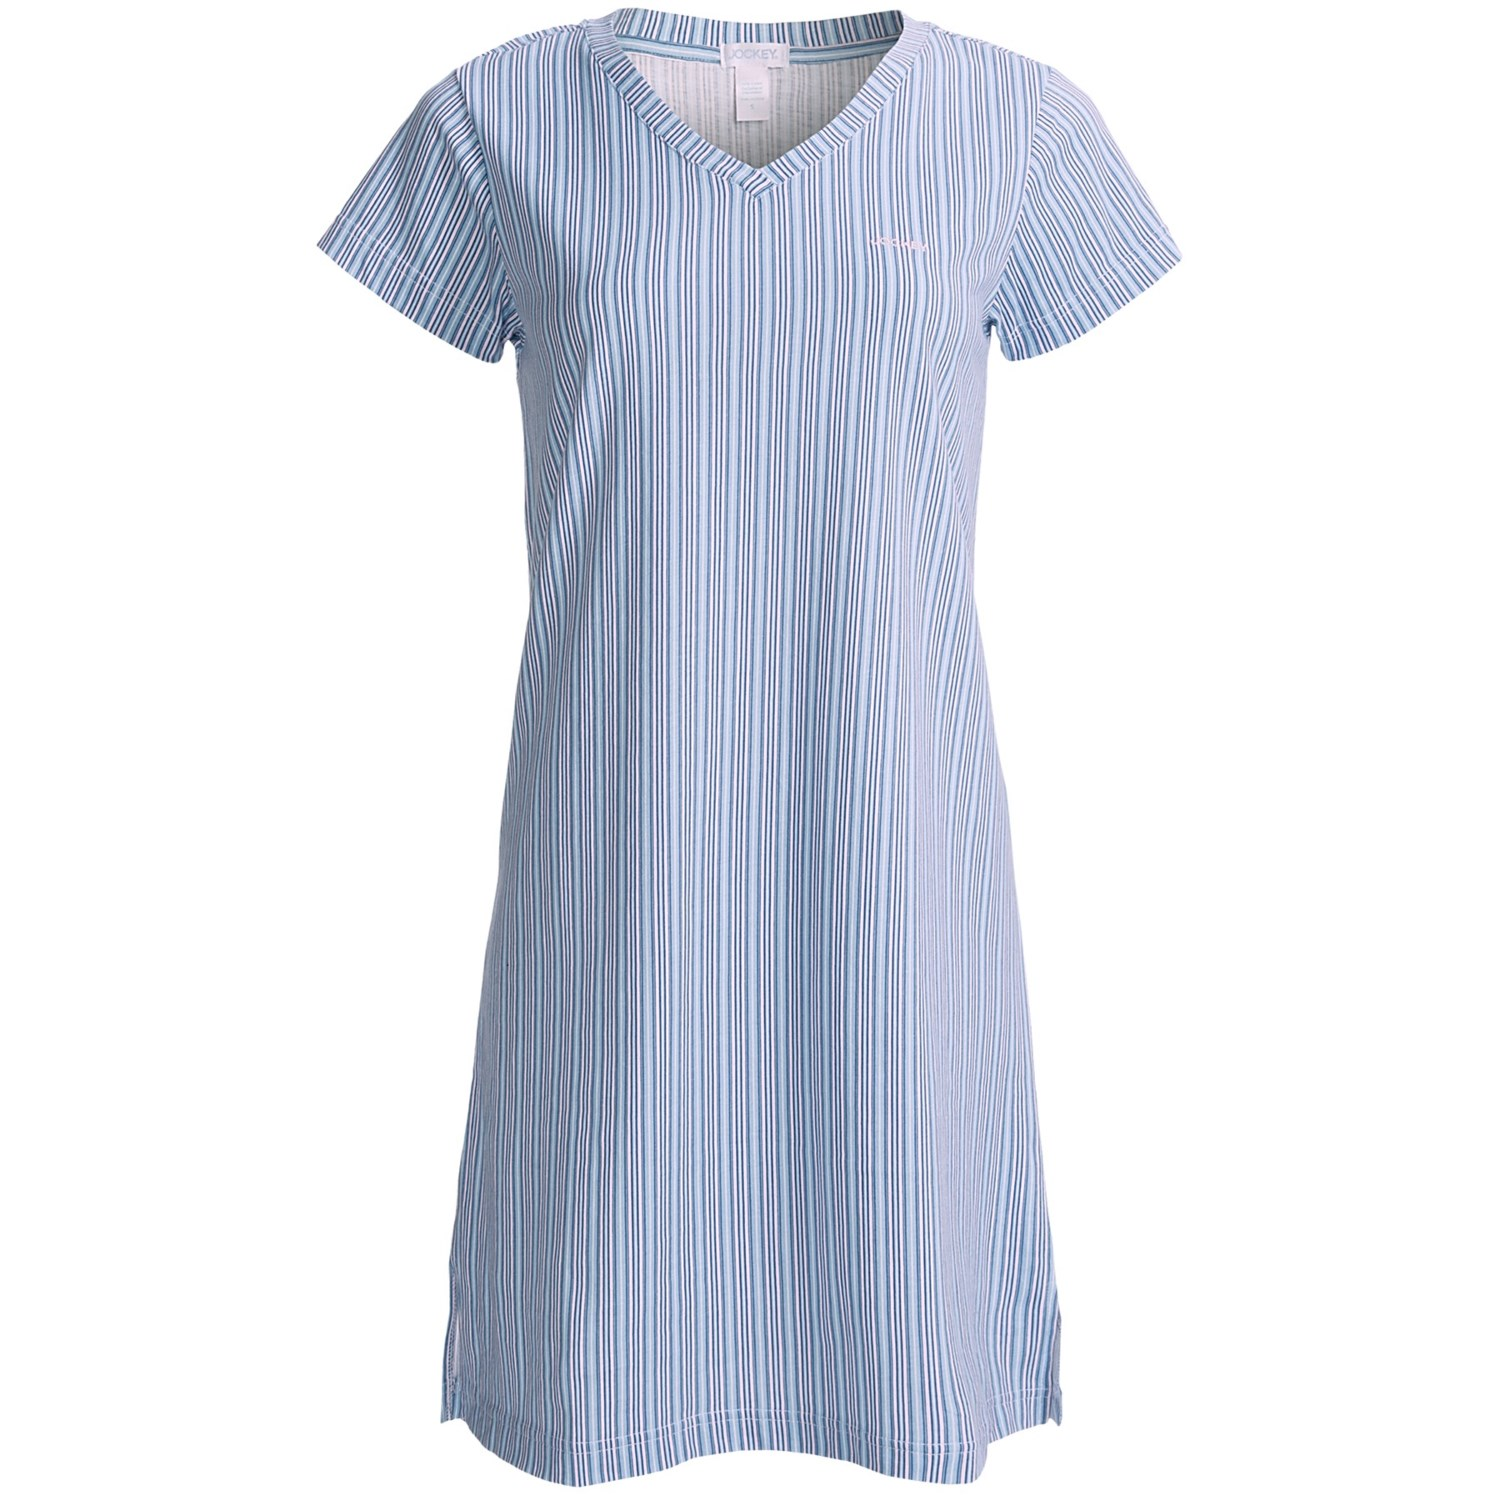 Jockey v neck sleep shirt for women 6324x save 59 for Sleep shirt short sleeve